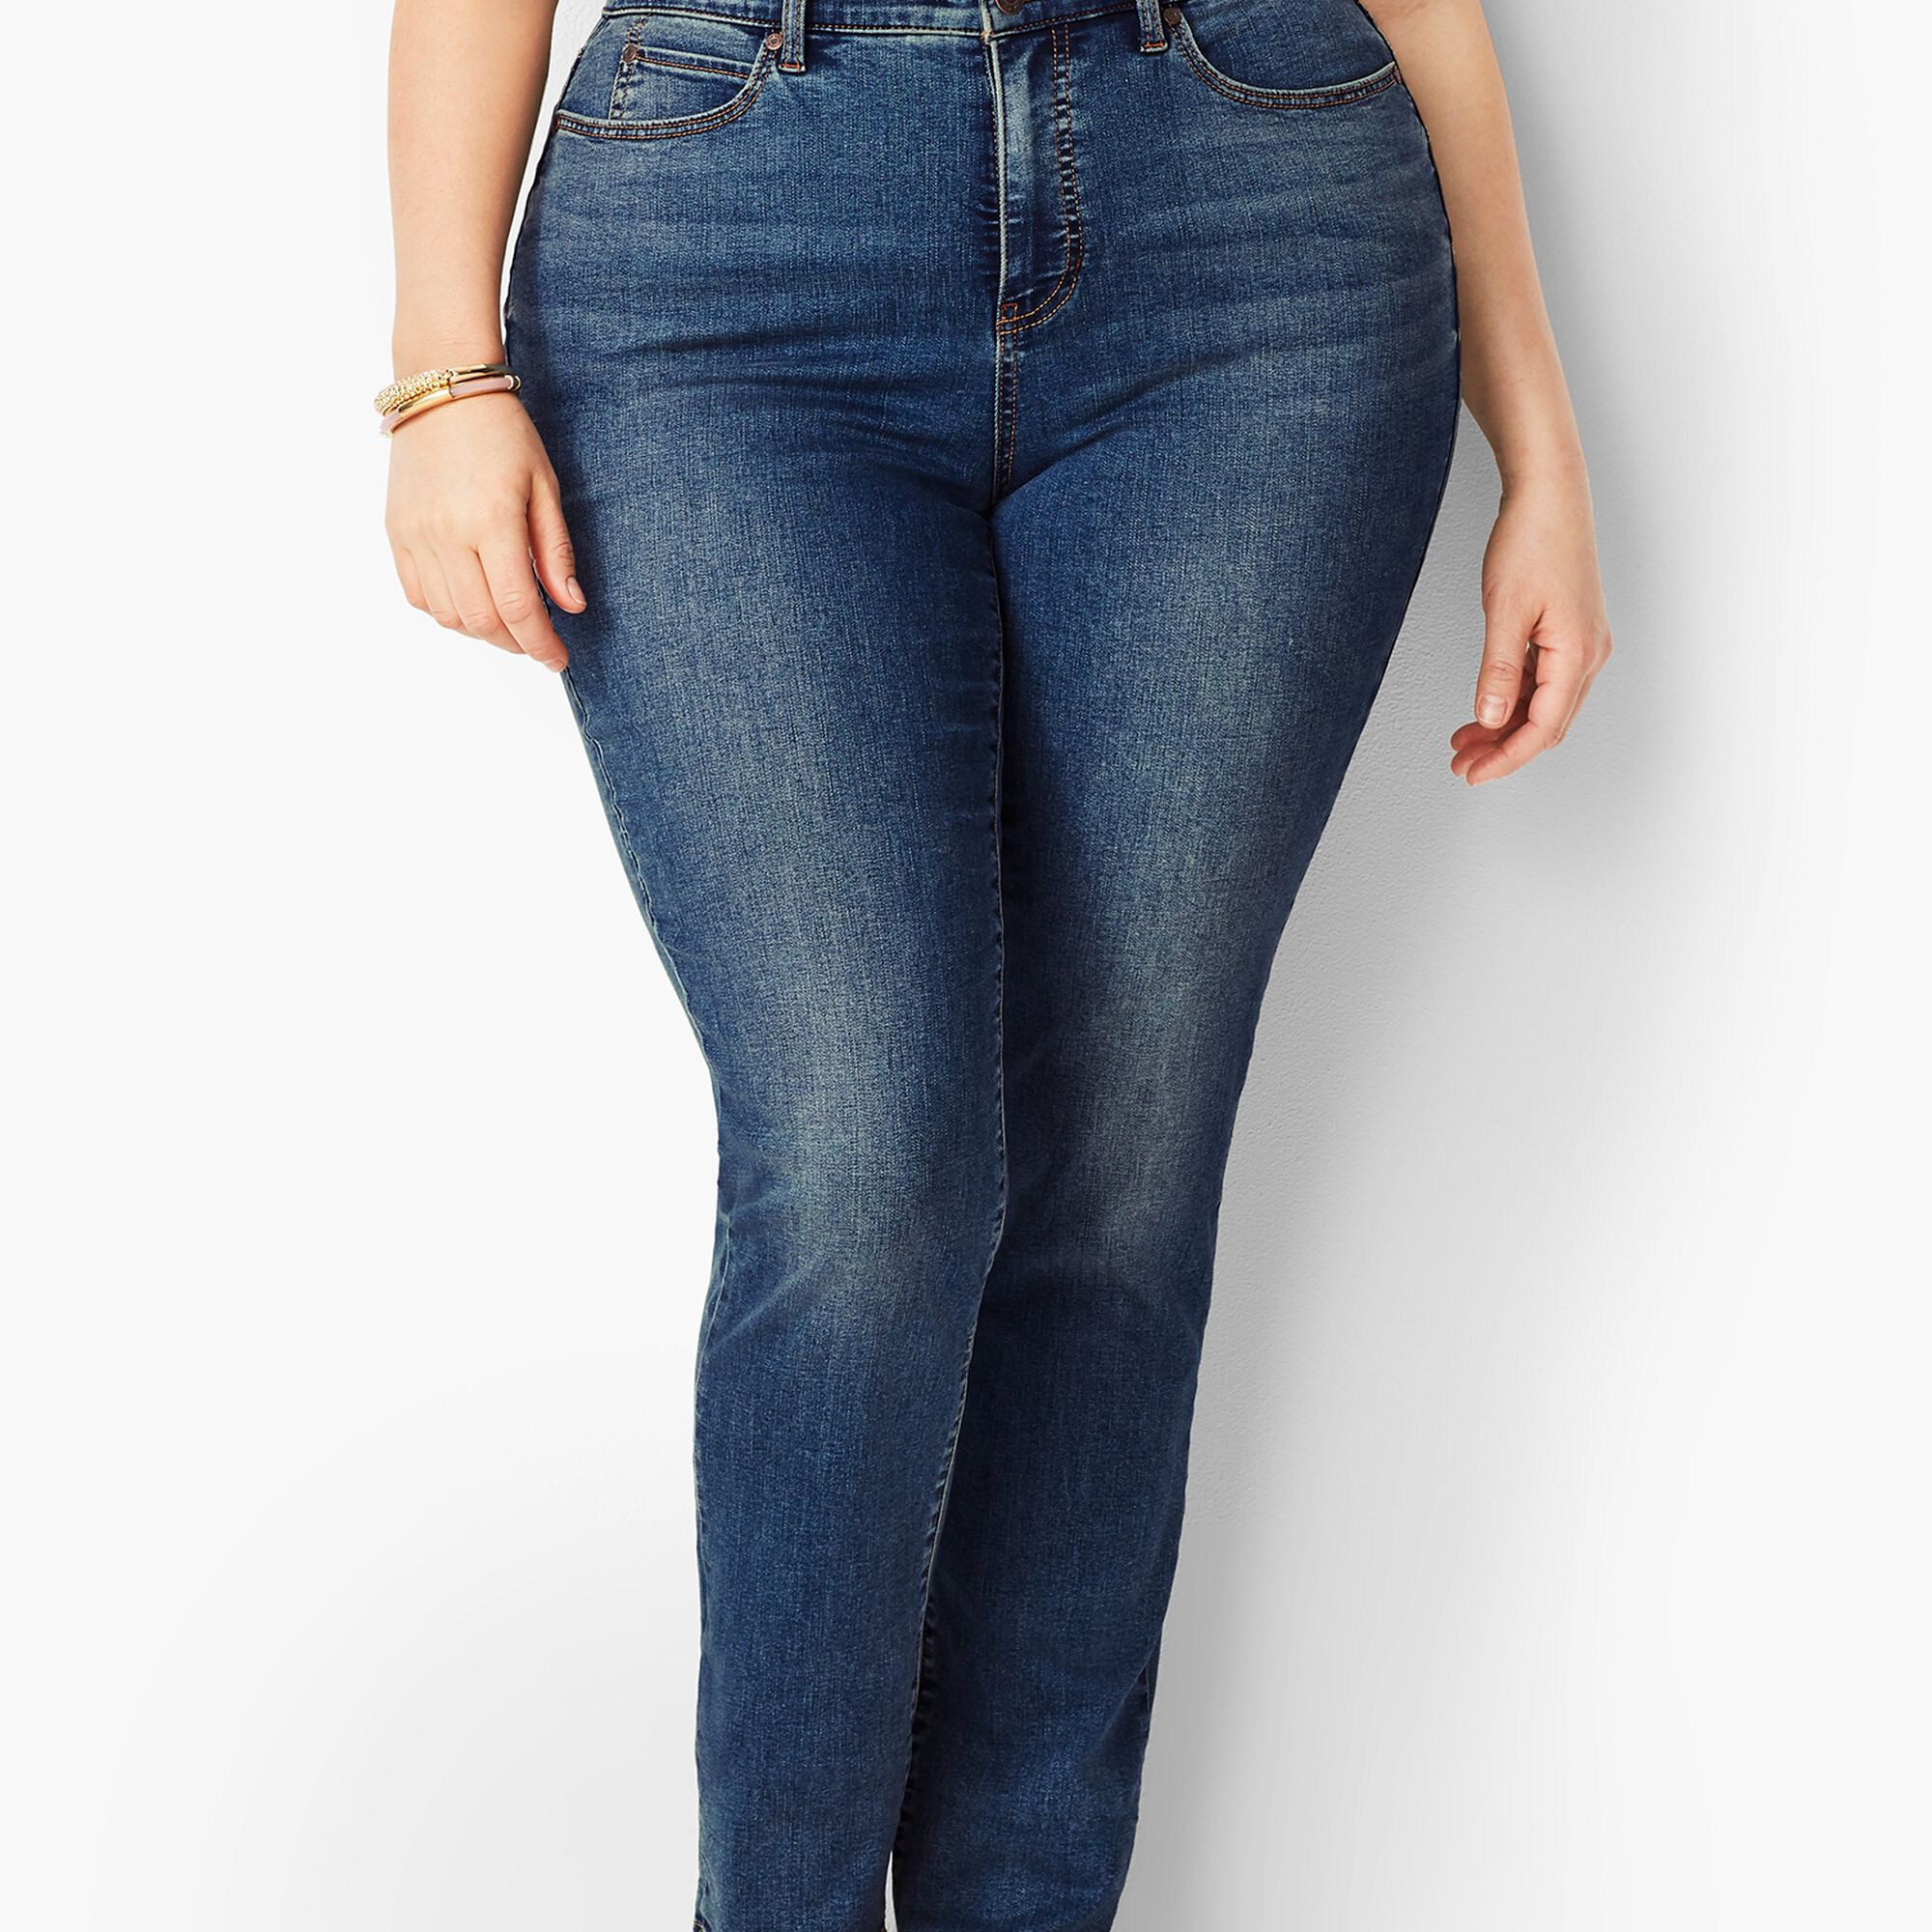 ad471d57ba Plus Size High-Rise Straight-Leg Jeans - Curvy Fit/Baxter Wash Opens a New  Window.